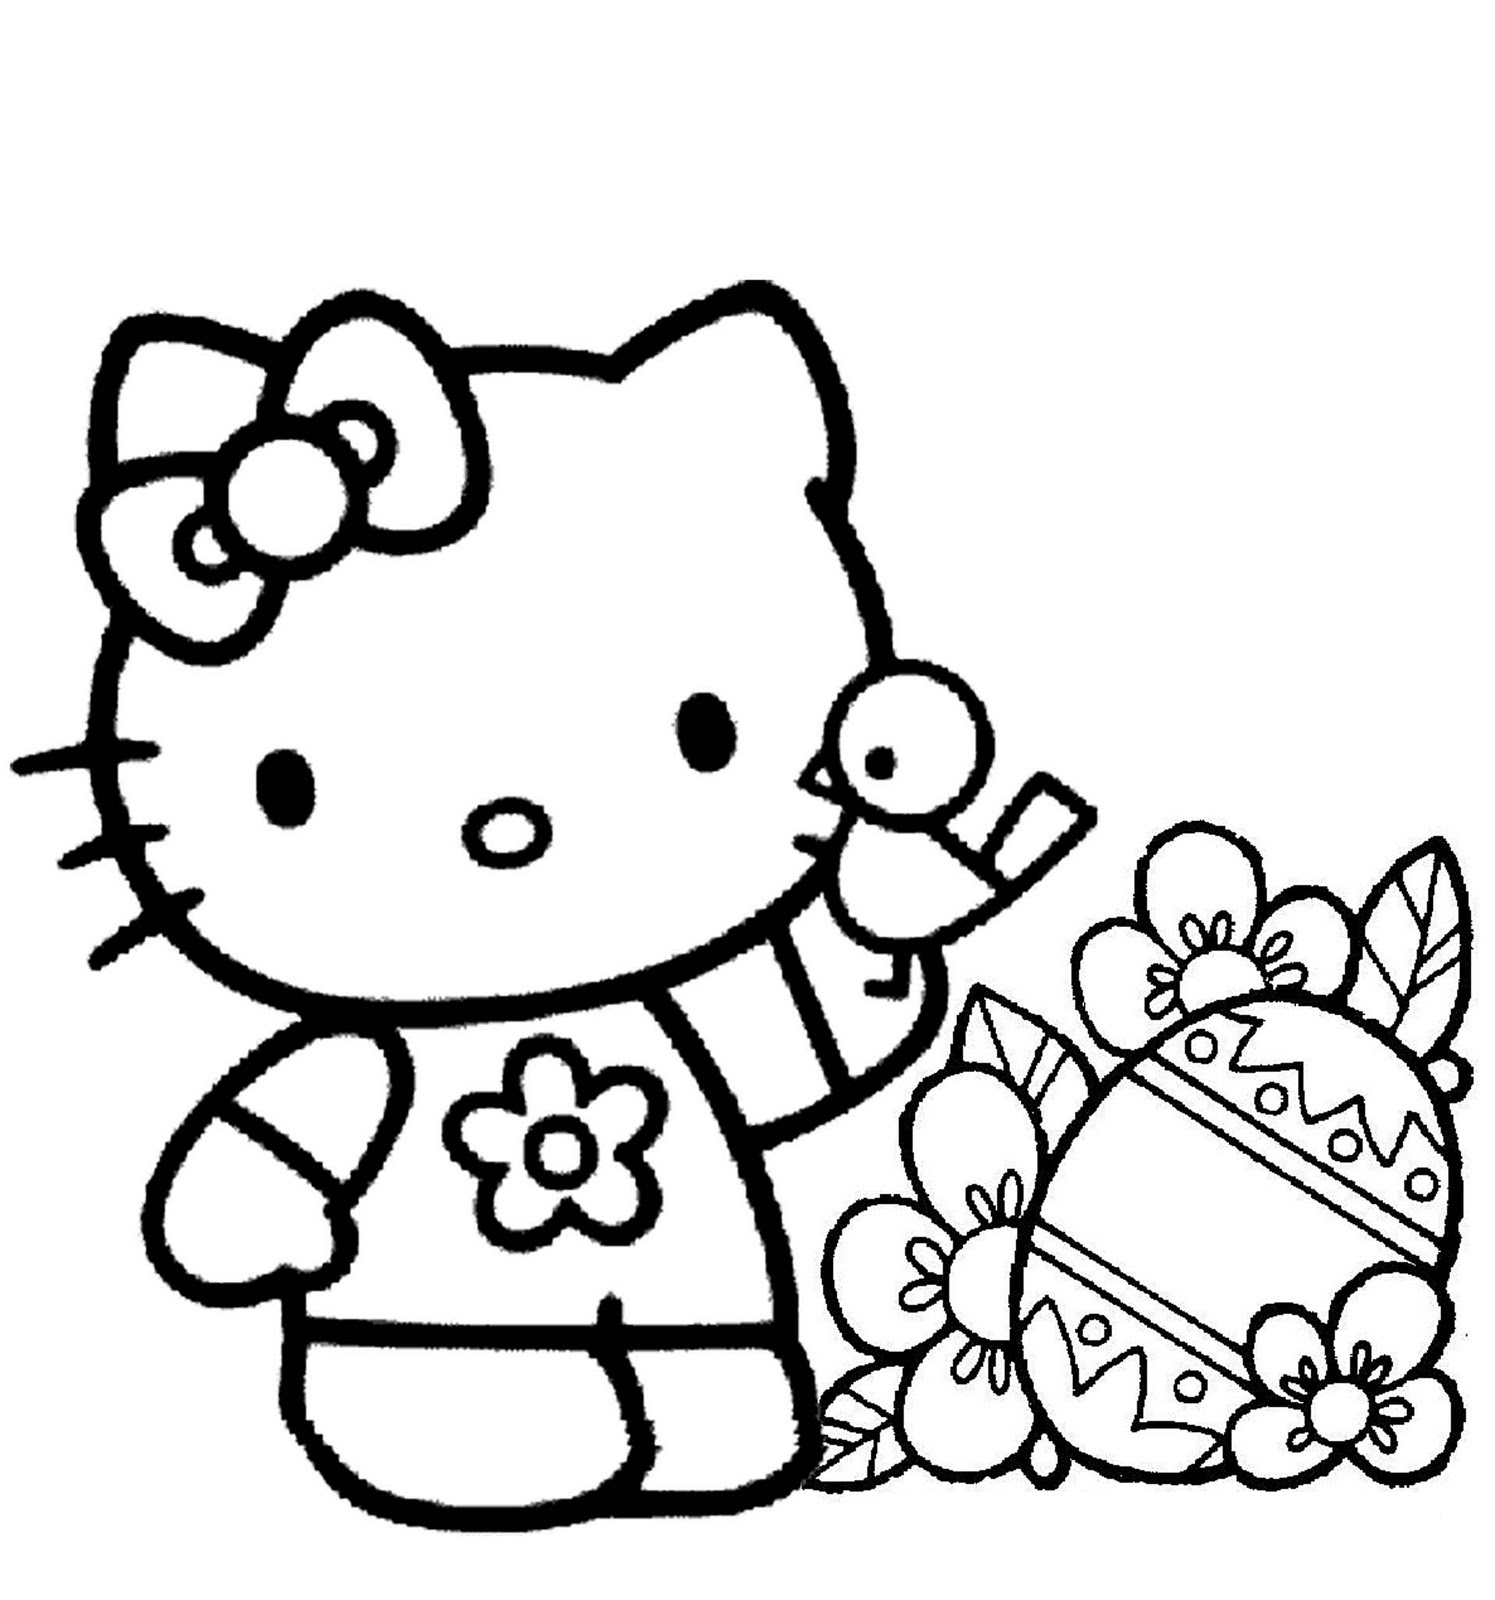 Ausmalbilder Hello Kitty Baby : Free Printable Hello Kitty Coloring Pages For Kids